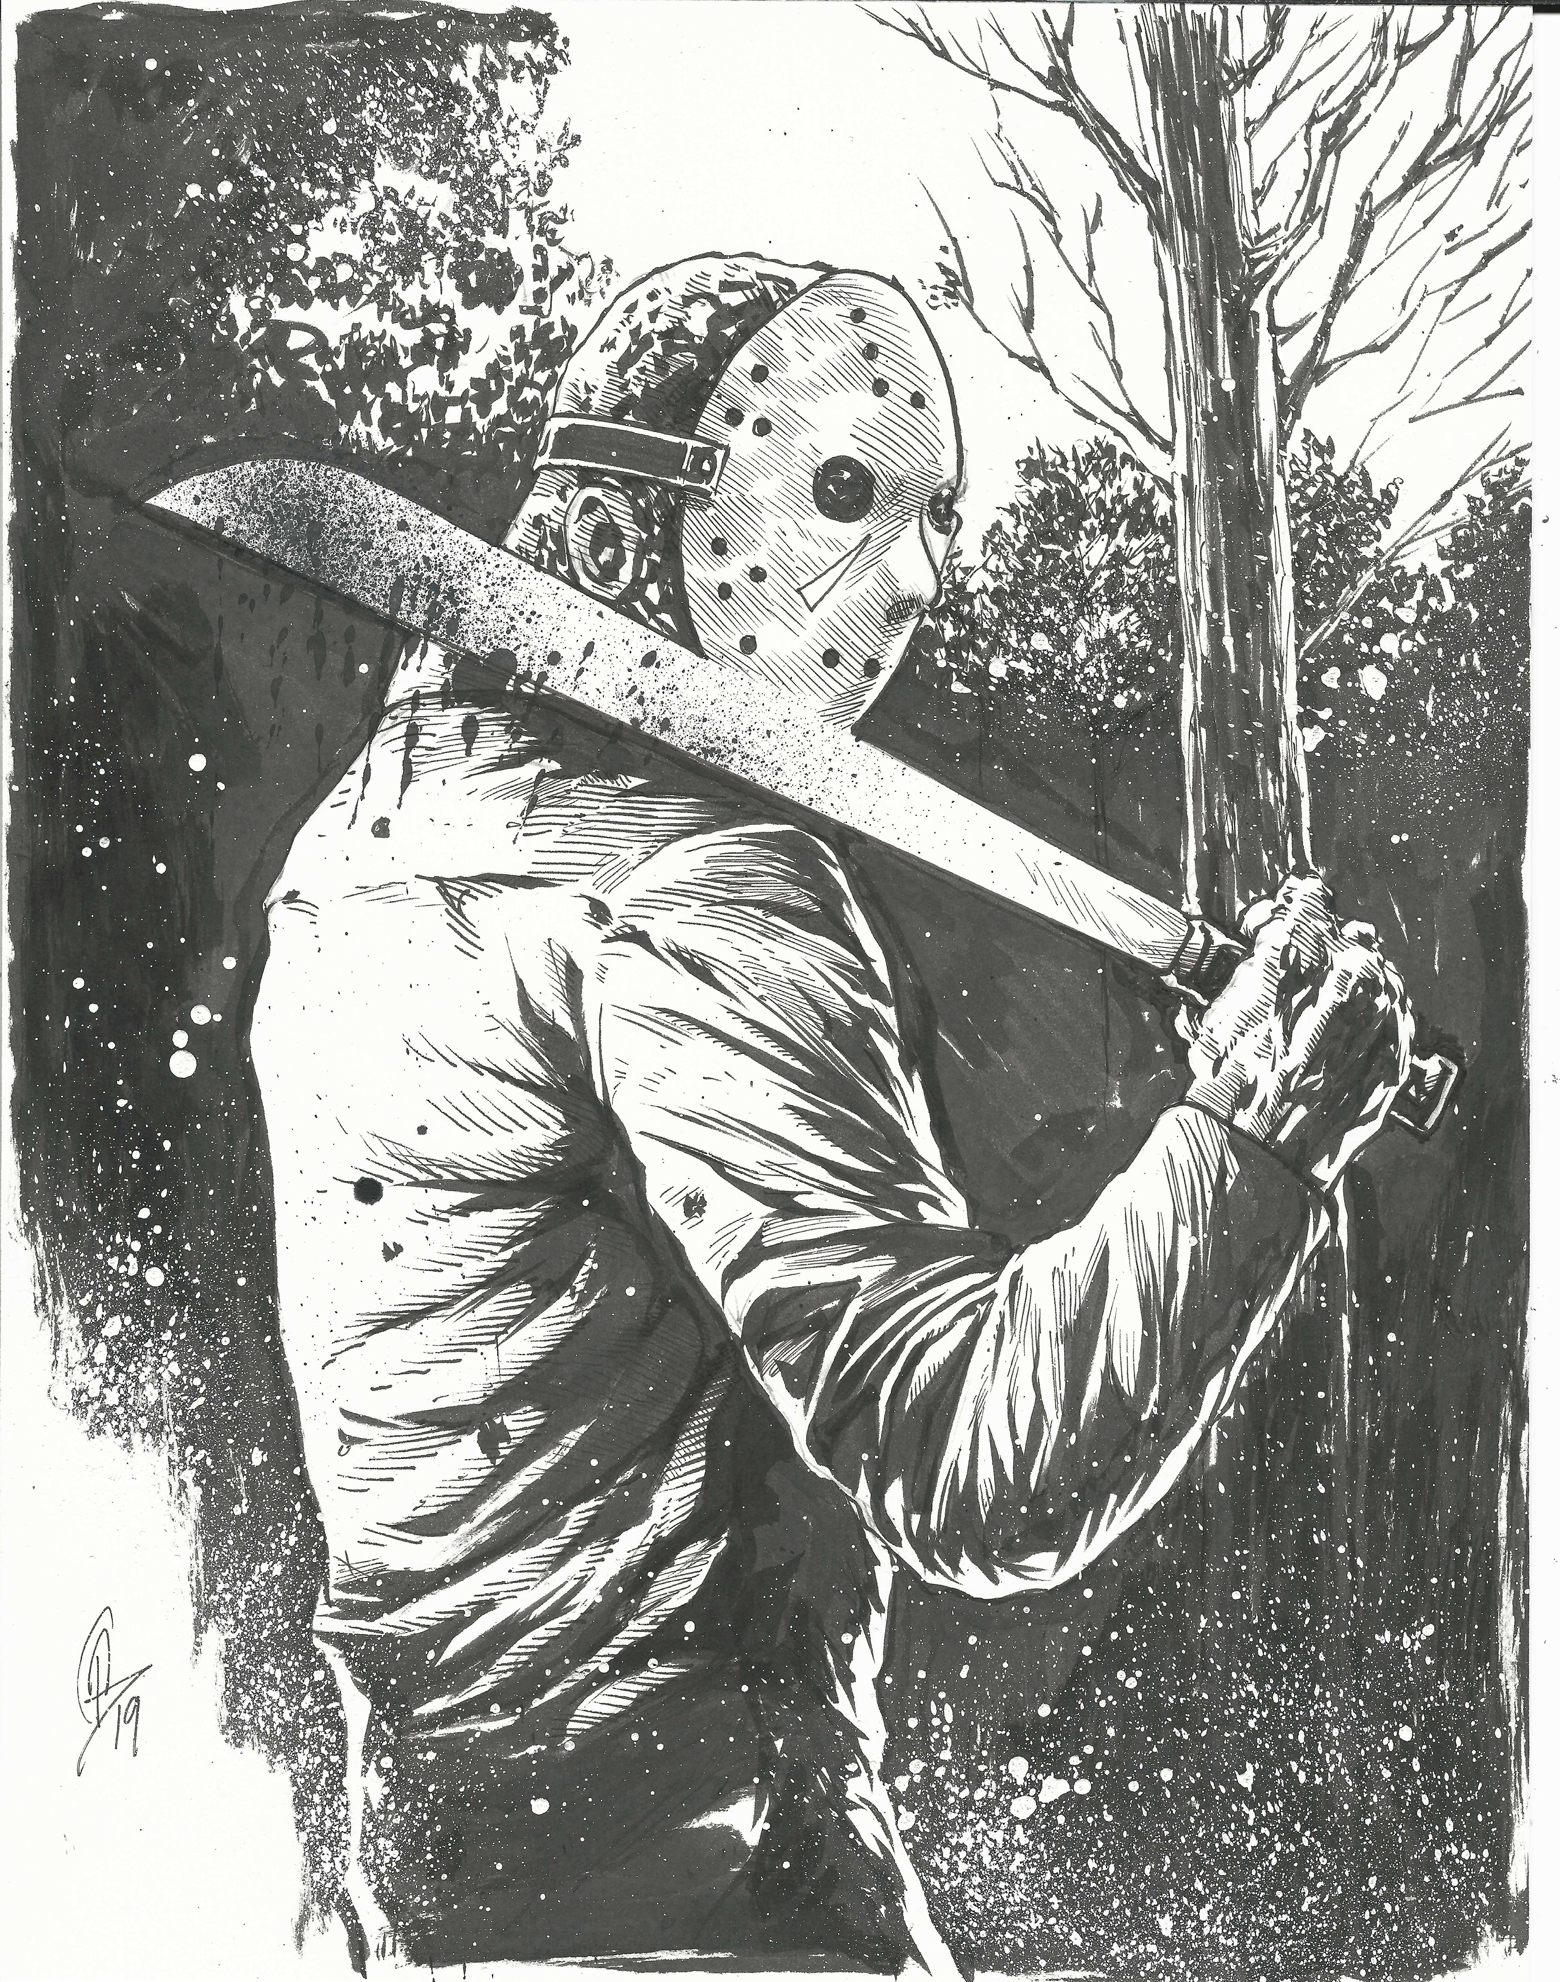 Jason Friday The 13th Drawing : jason, friday, drawing, Jason, Voorhees, (Friday, 13th), Original, Drawing, 8.5x11, Beistel, Comic, Online, Store, Powered, Storenvy